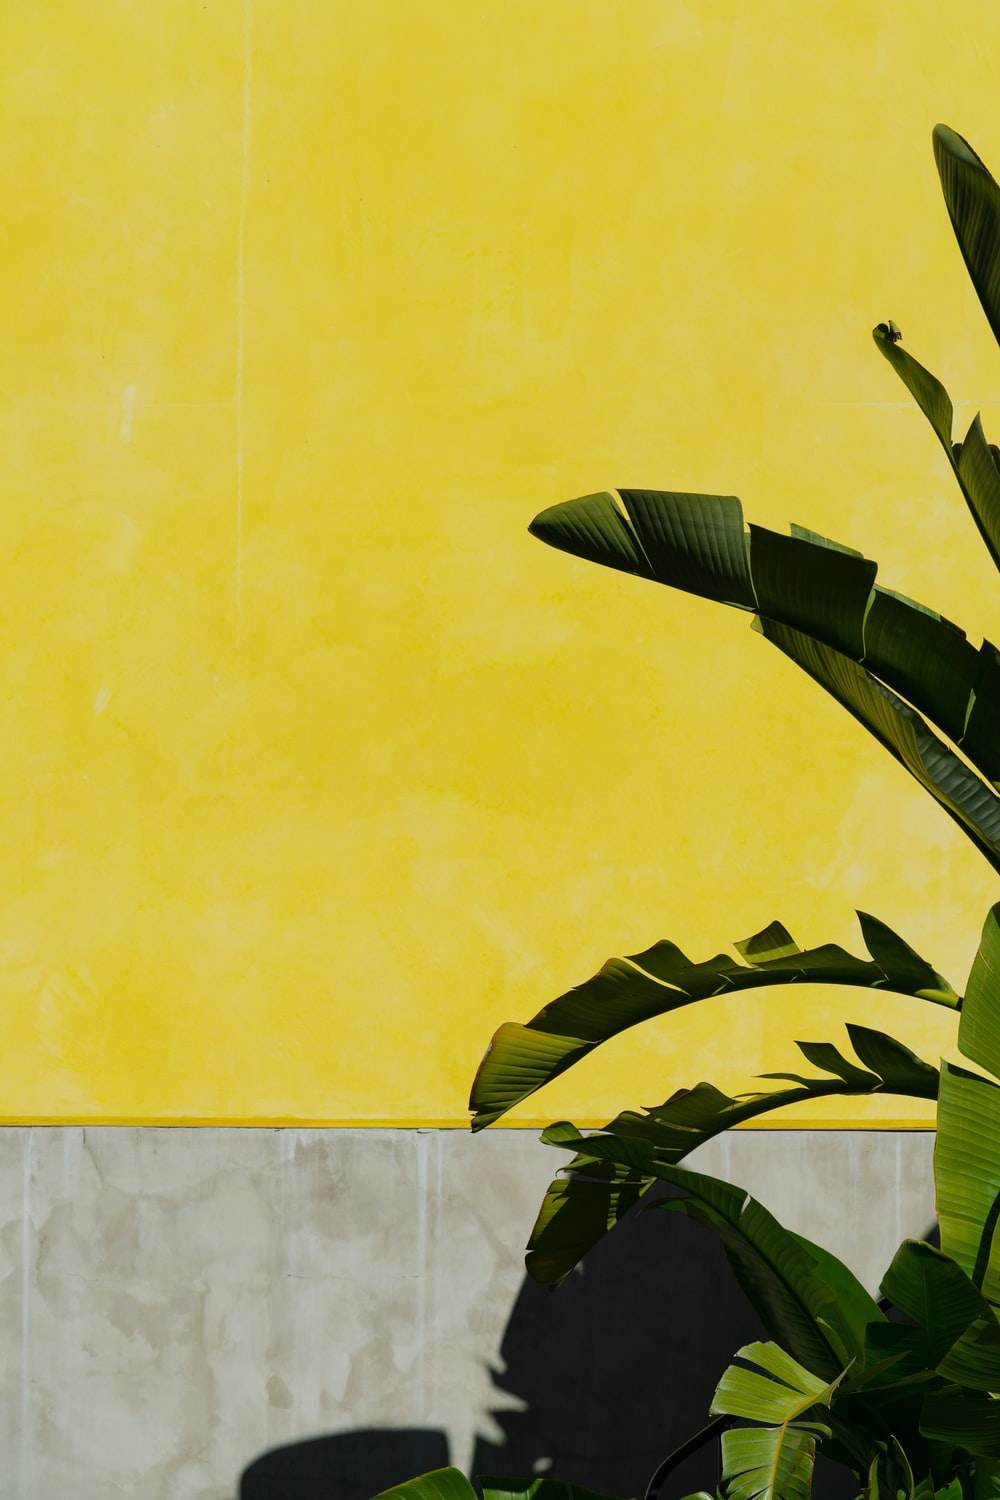 green banana tree beside yellow painted wall